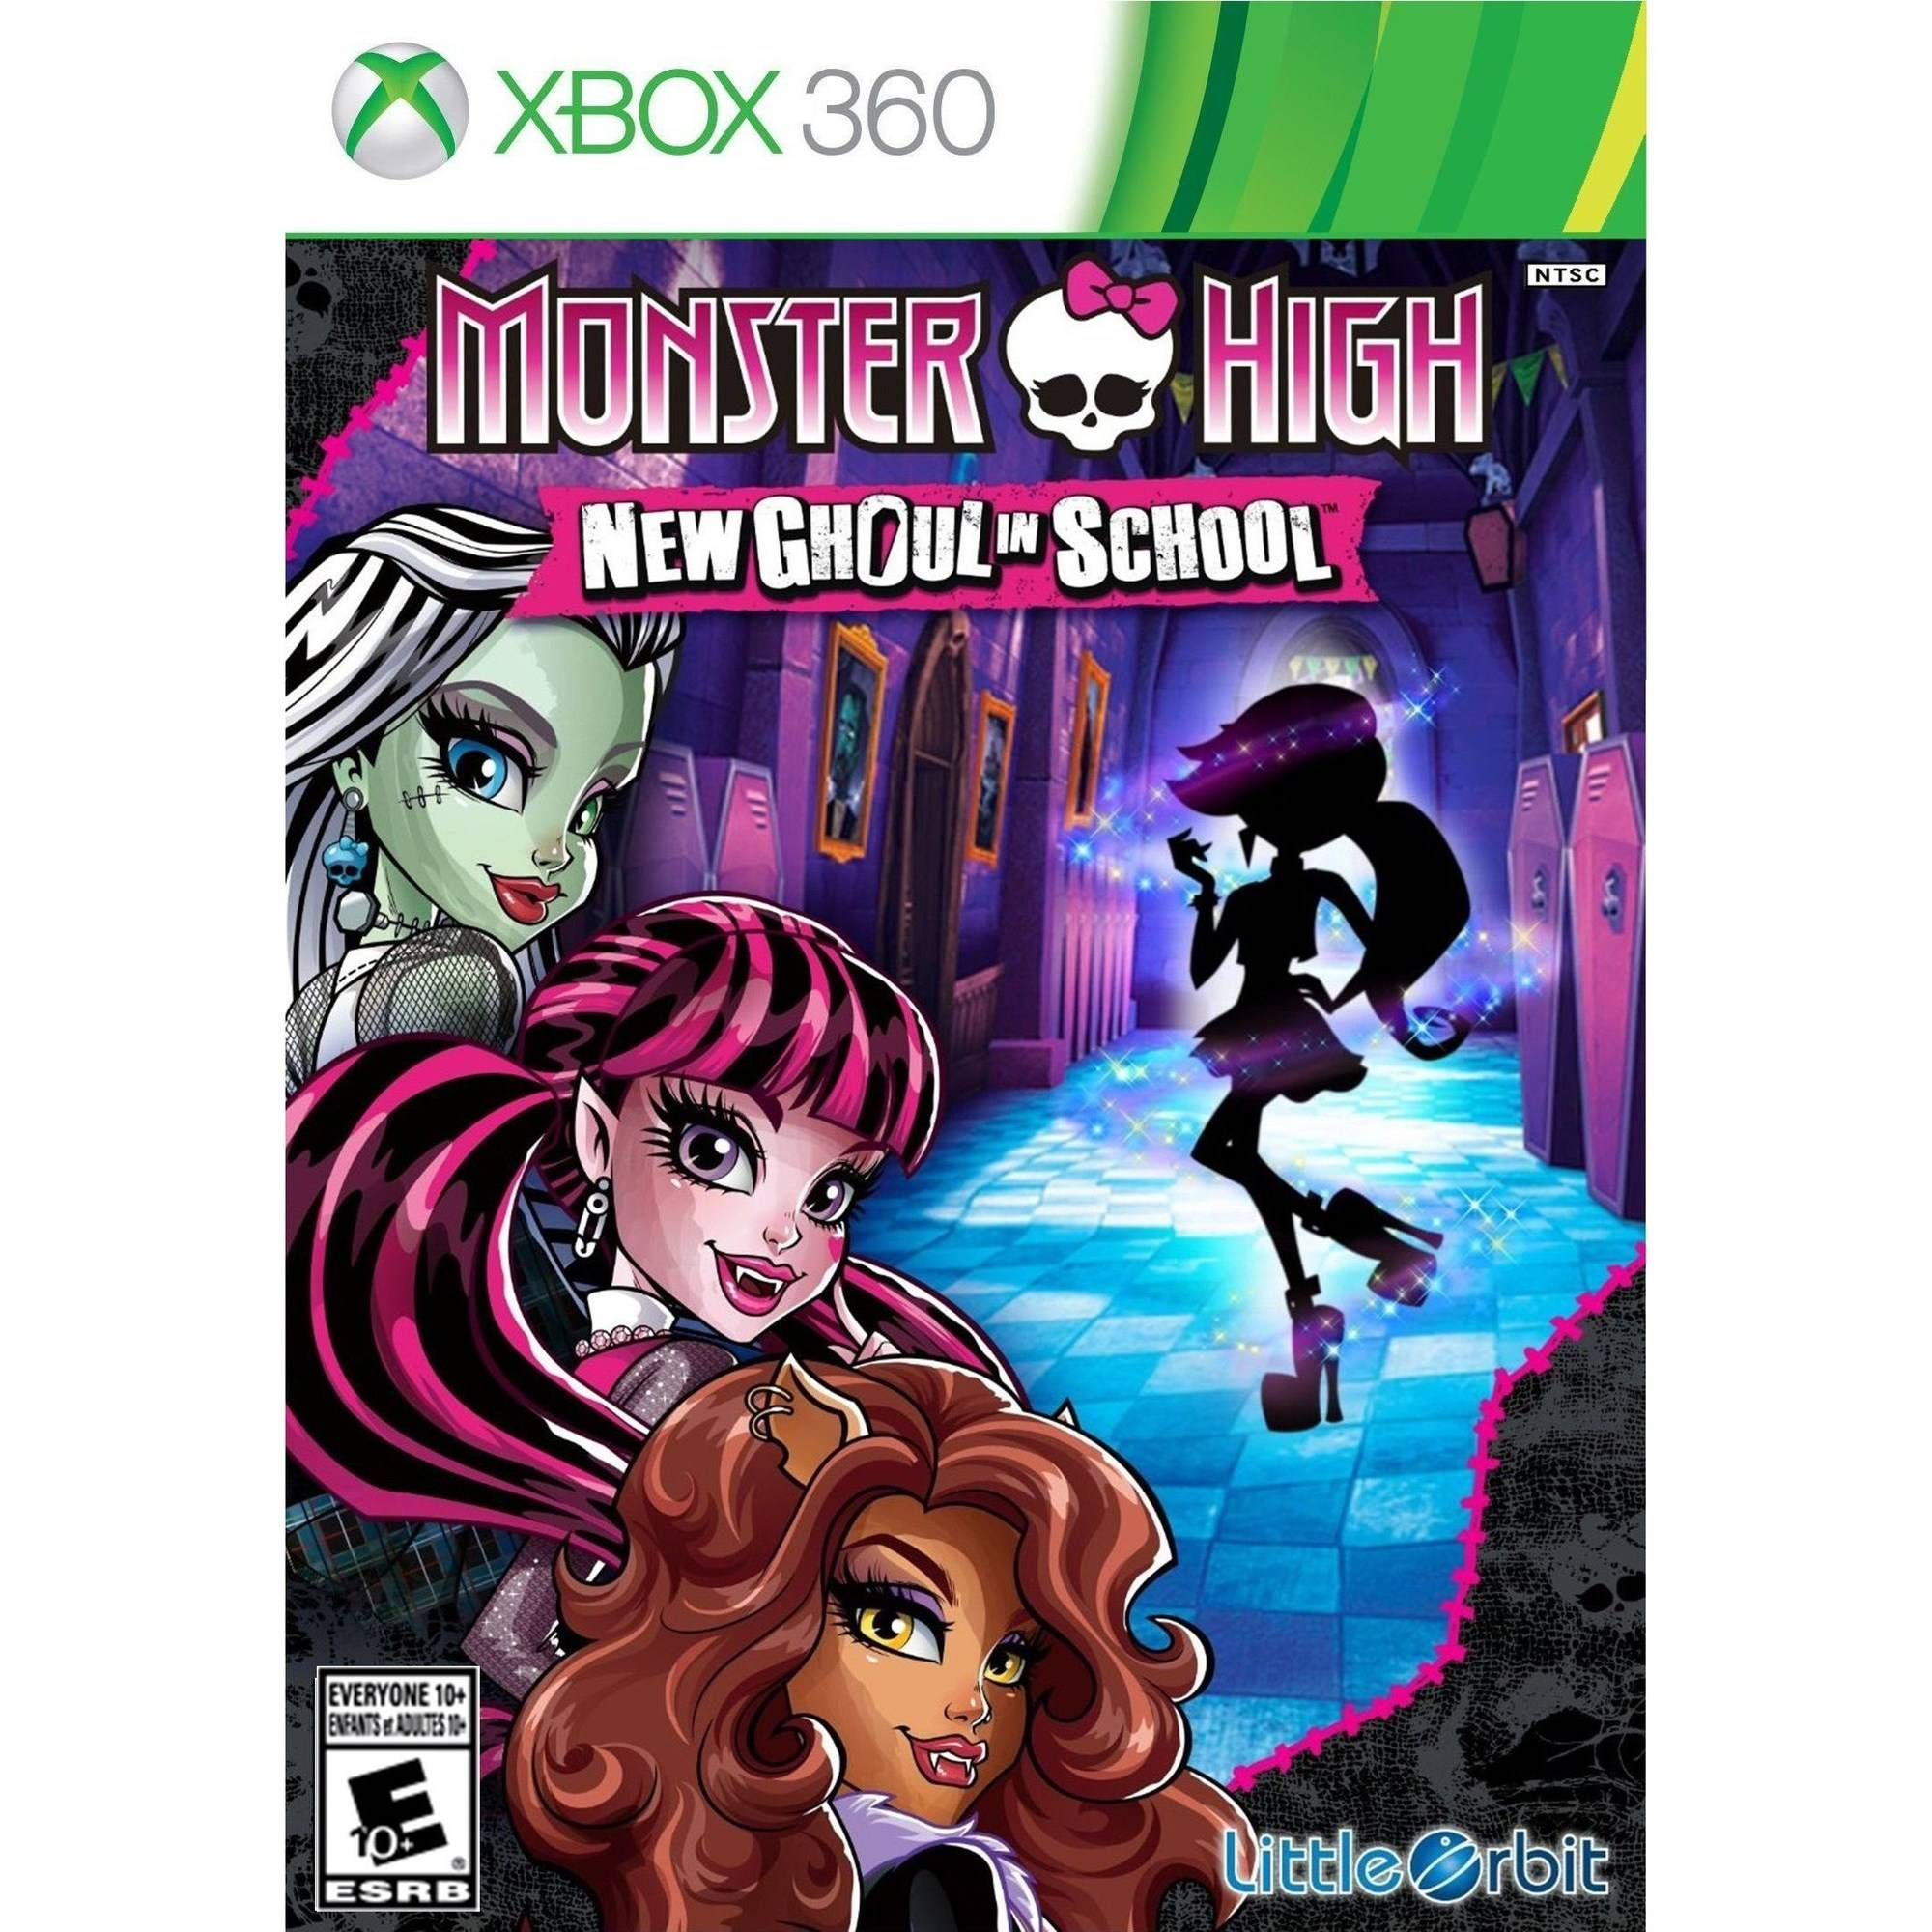 Monster High New Ghoul In School(Xbox 360)